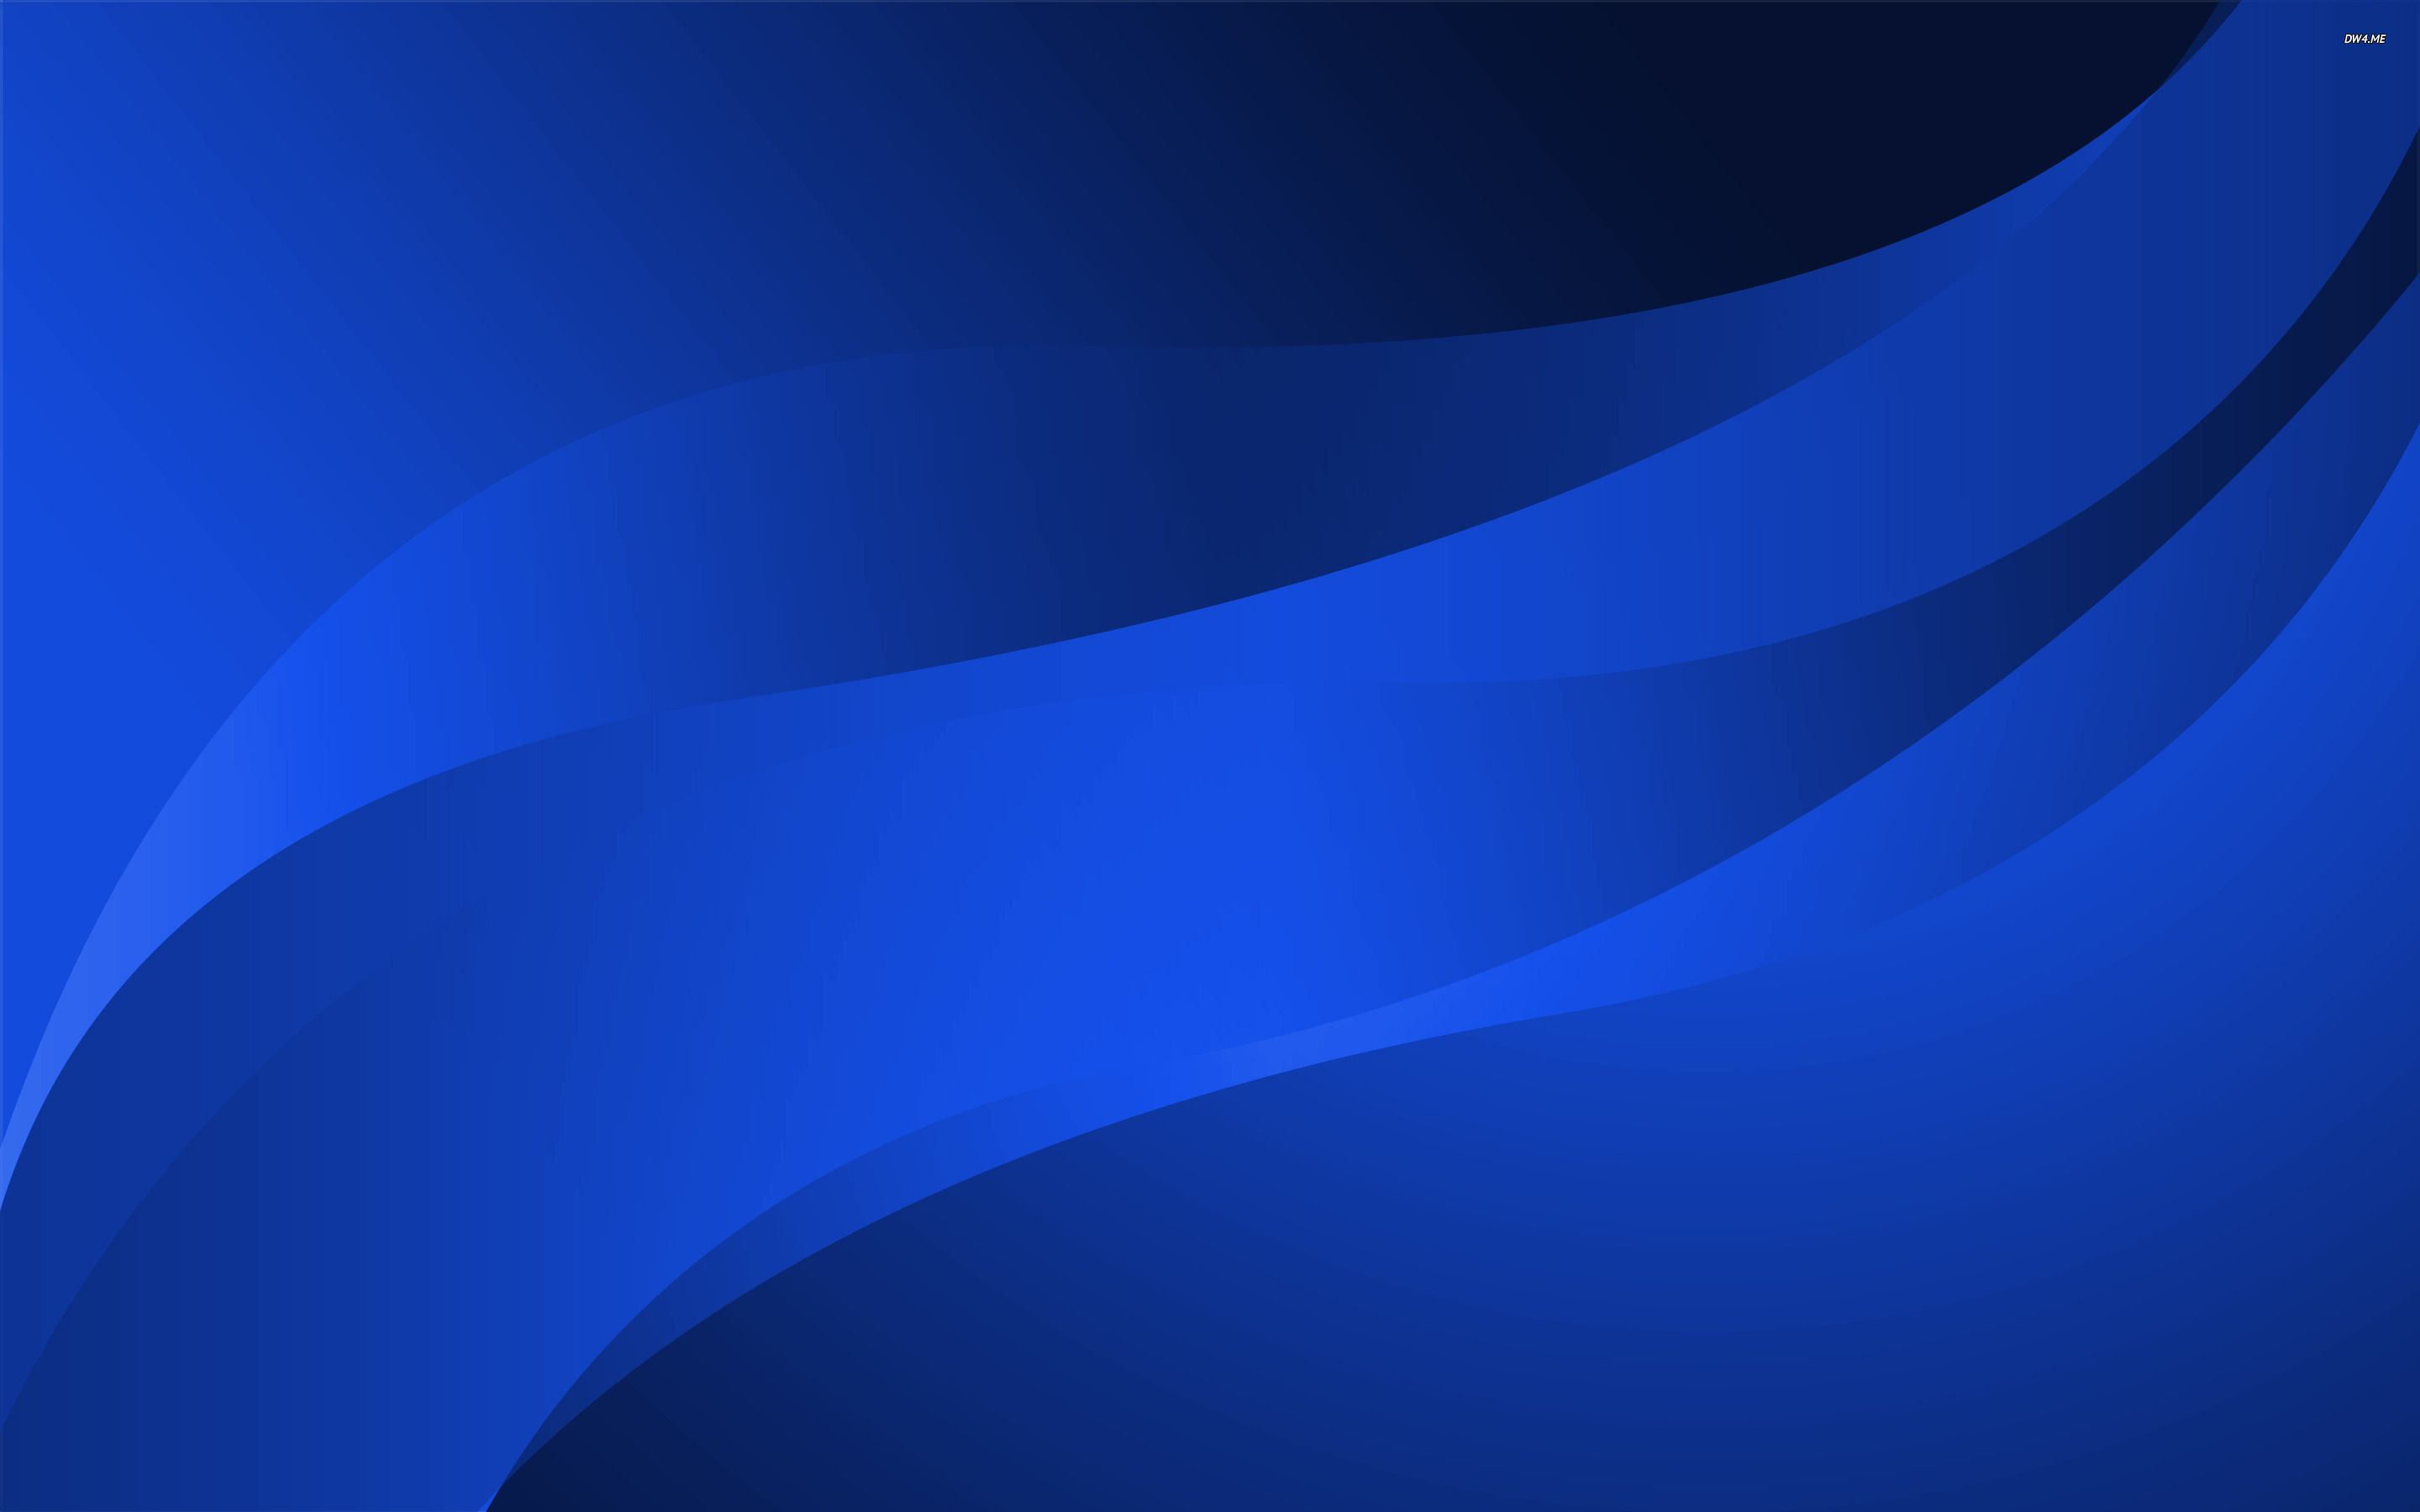 HD Wallpapers In Blue